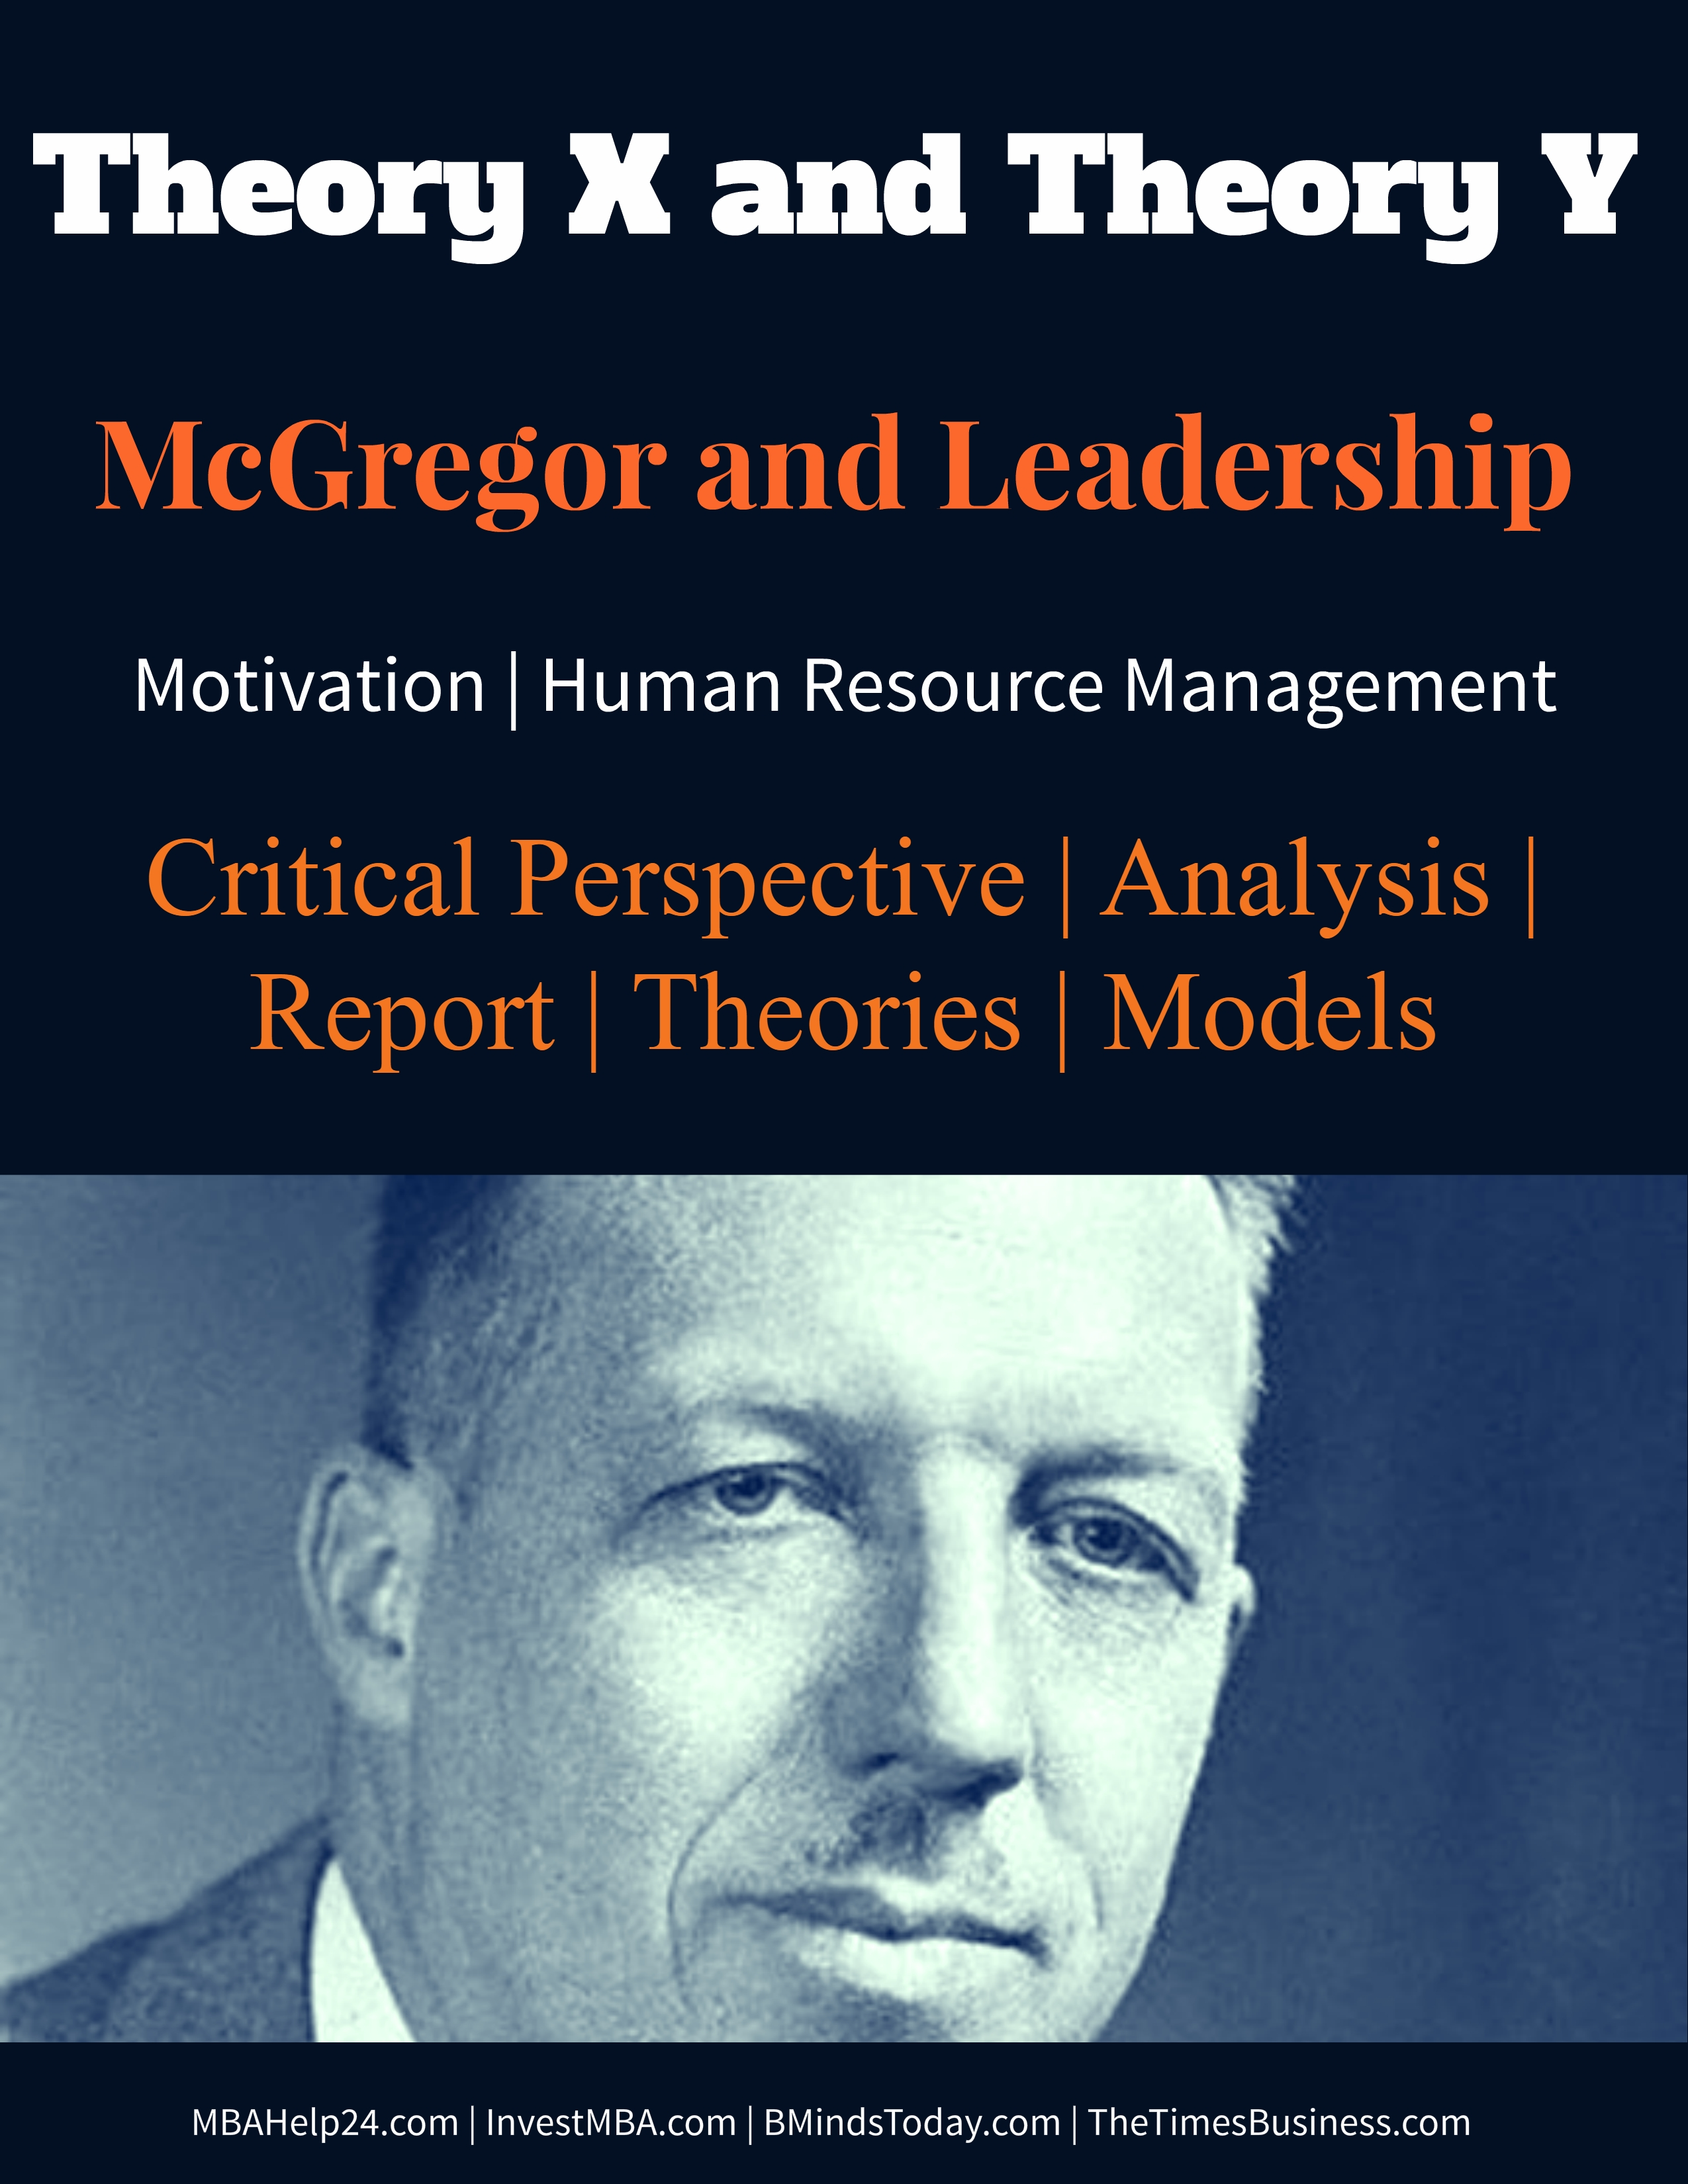 McGregor Theory X and Theory Leadership and motivation theory theory x Theory X and Theory Y | McGregor and Leadership | Motivation | HR McGregor Theory X and Theory Leadership and motivation theory